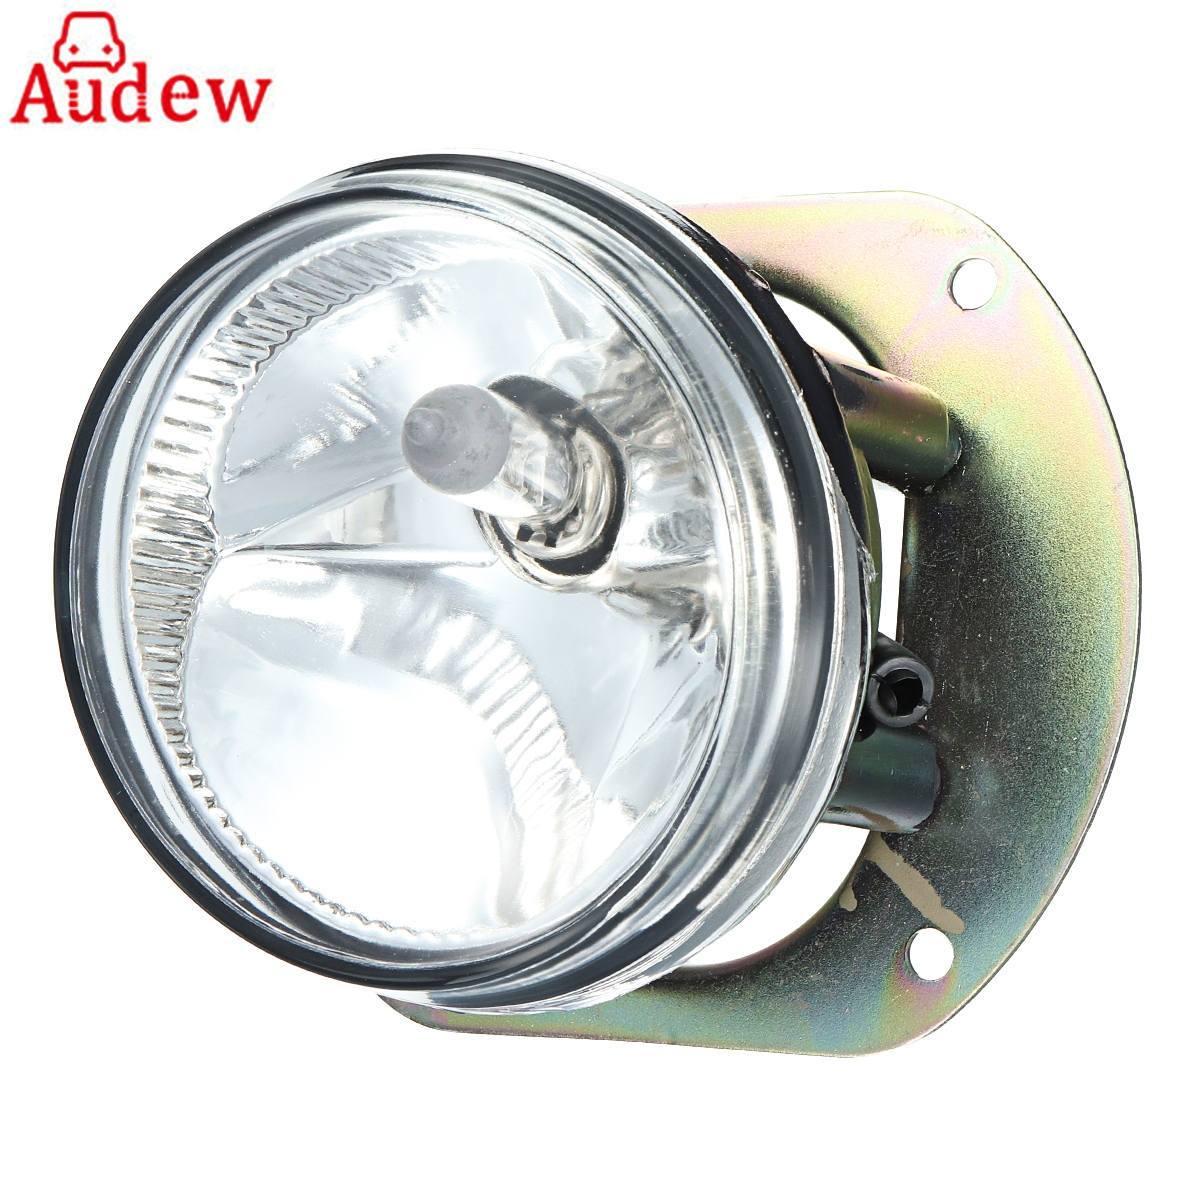 1Pcs Car Front Fog Light Left/Right Bumper Lamp For Mercedes-Benz W164 R171 W204 C300 CL550 ak ak56023 mercedes benz sl65 1 18 r c car toy silver